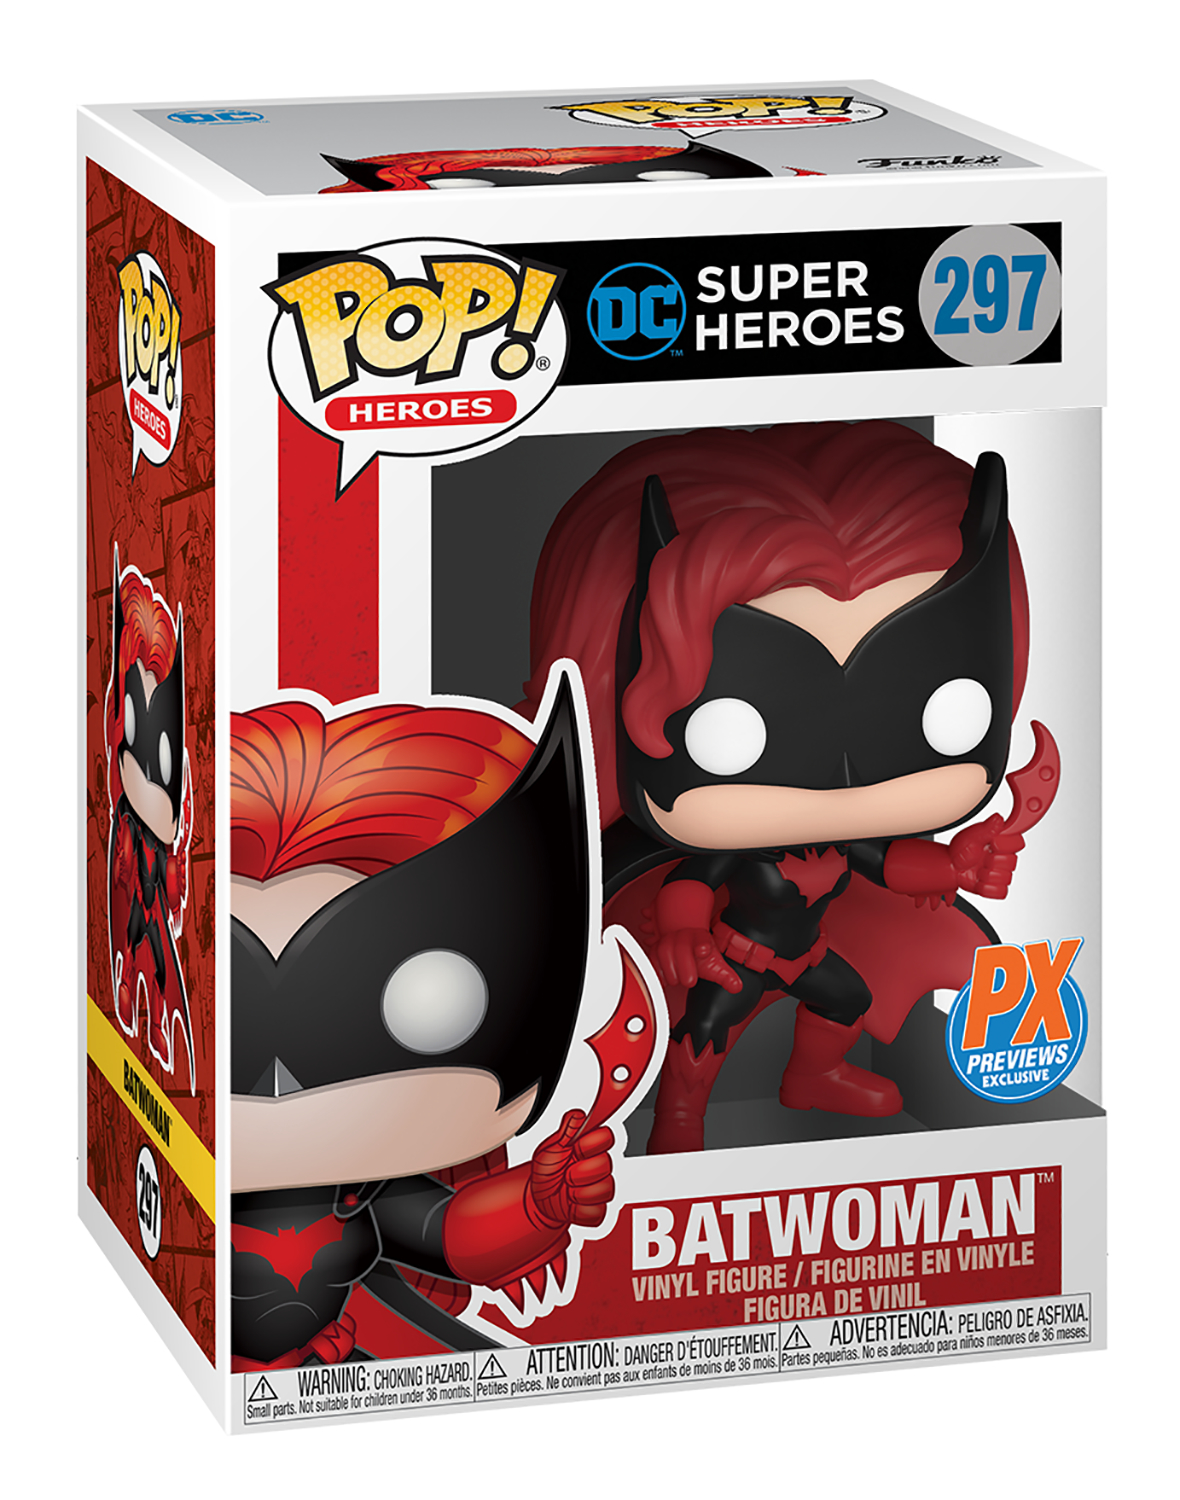 POP HEROES DC BATWOMAN PX VIN FIG